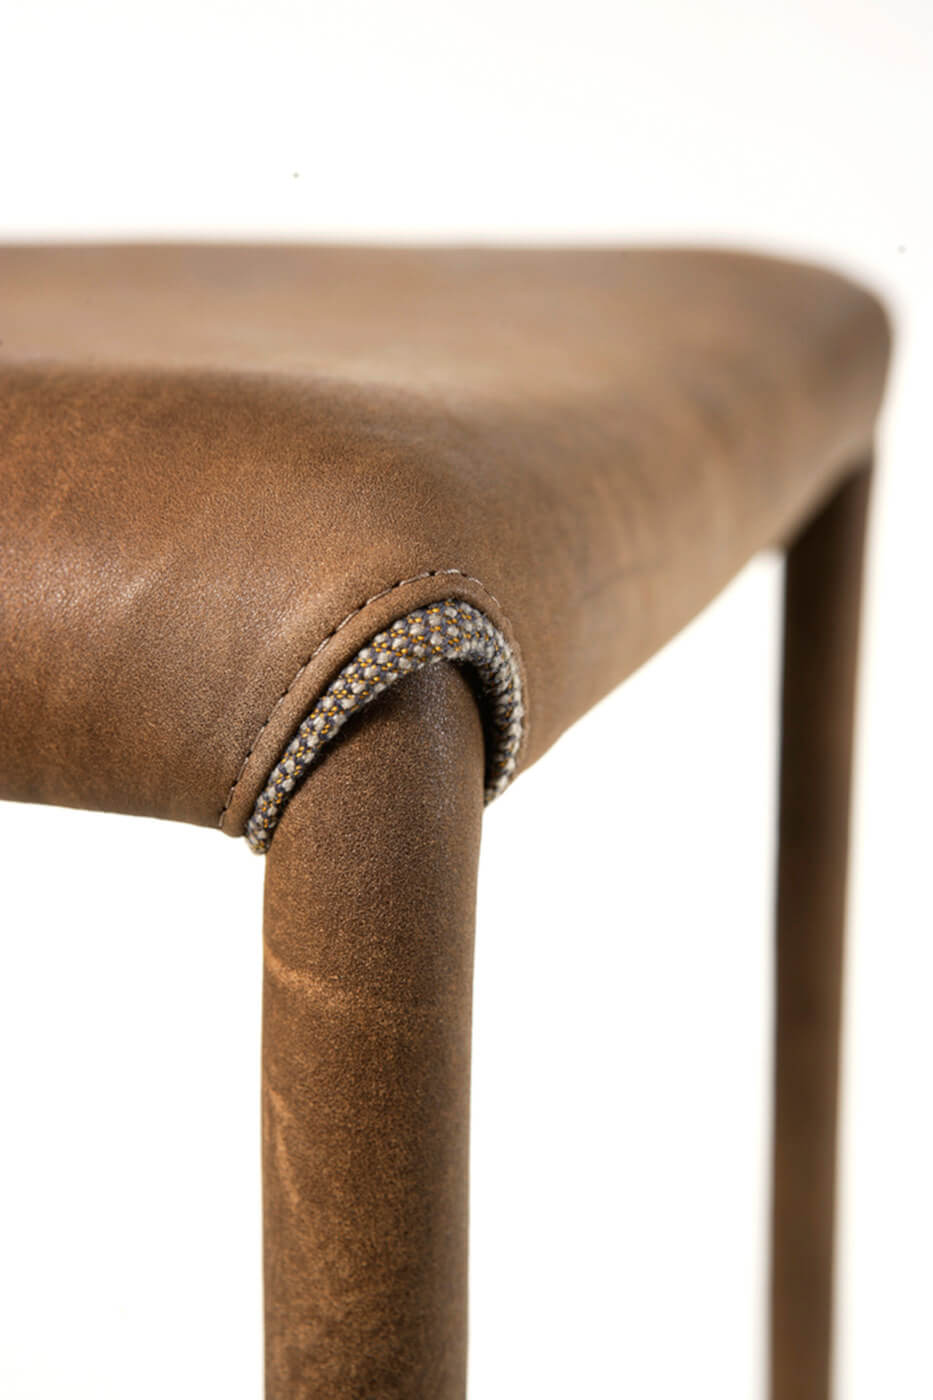 Nuvola chair detail with seat and legs covered in brown leather